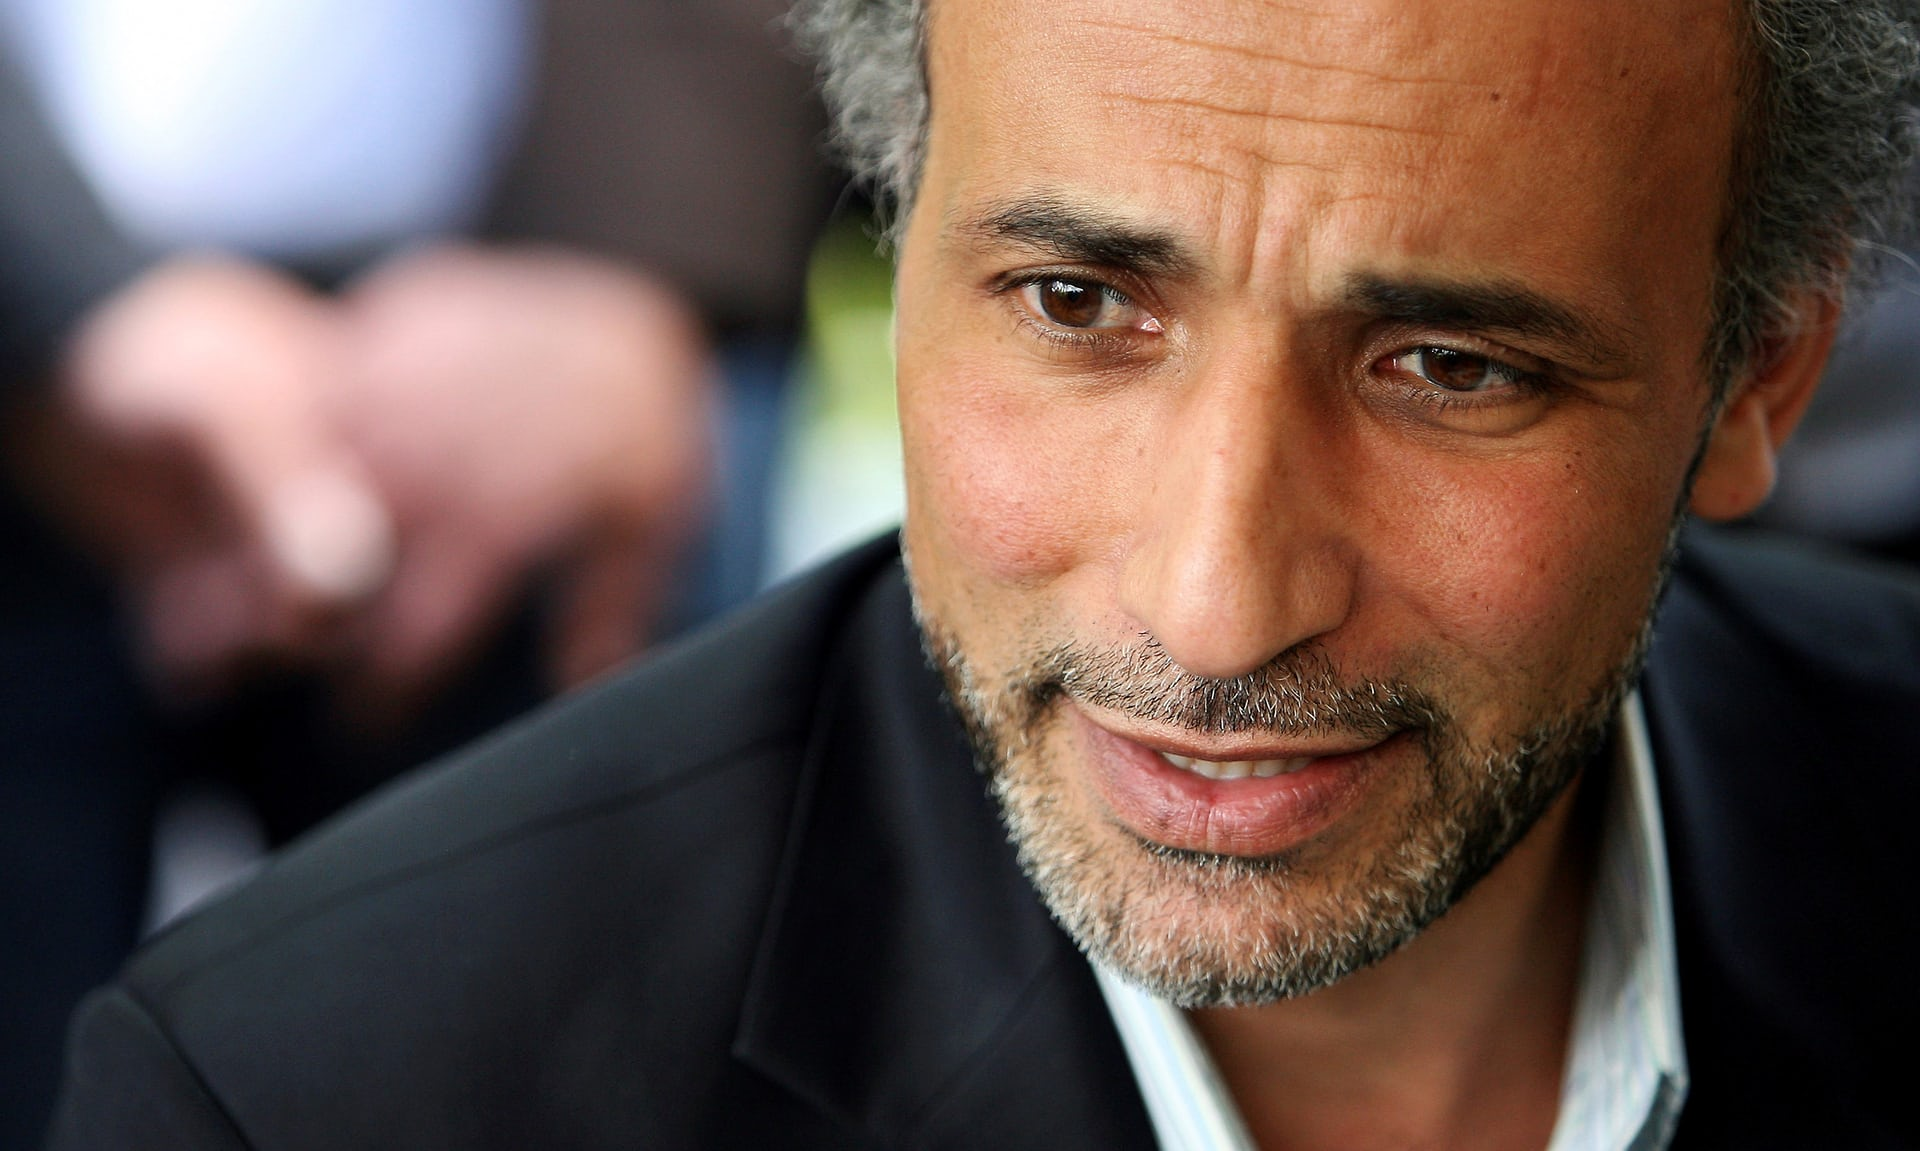 Tariq Ramadan paid woman to stay silent about affair